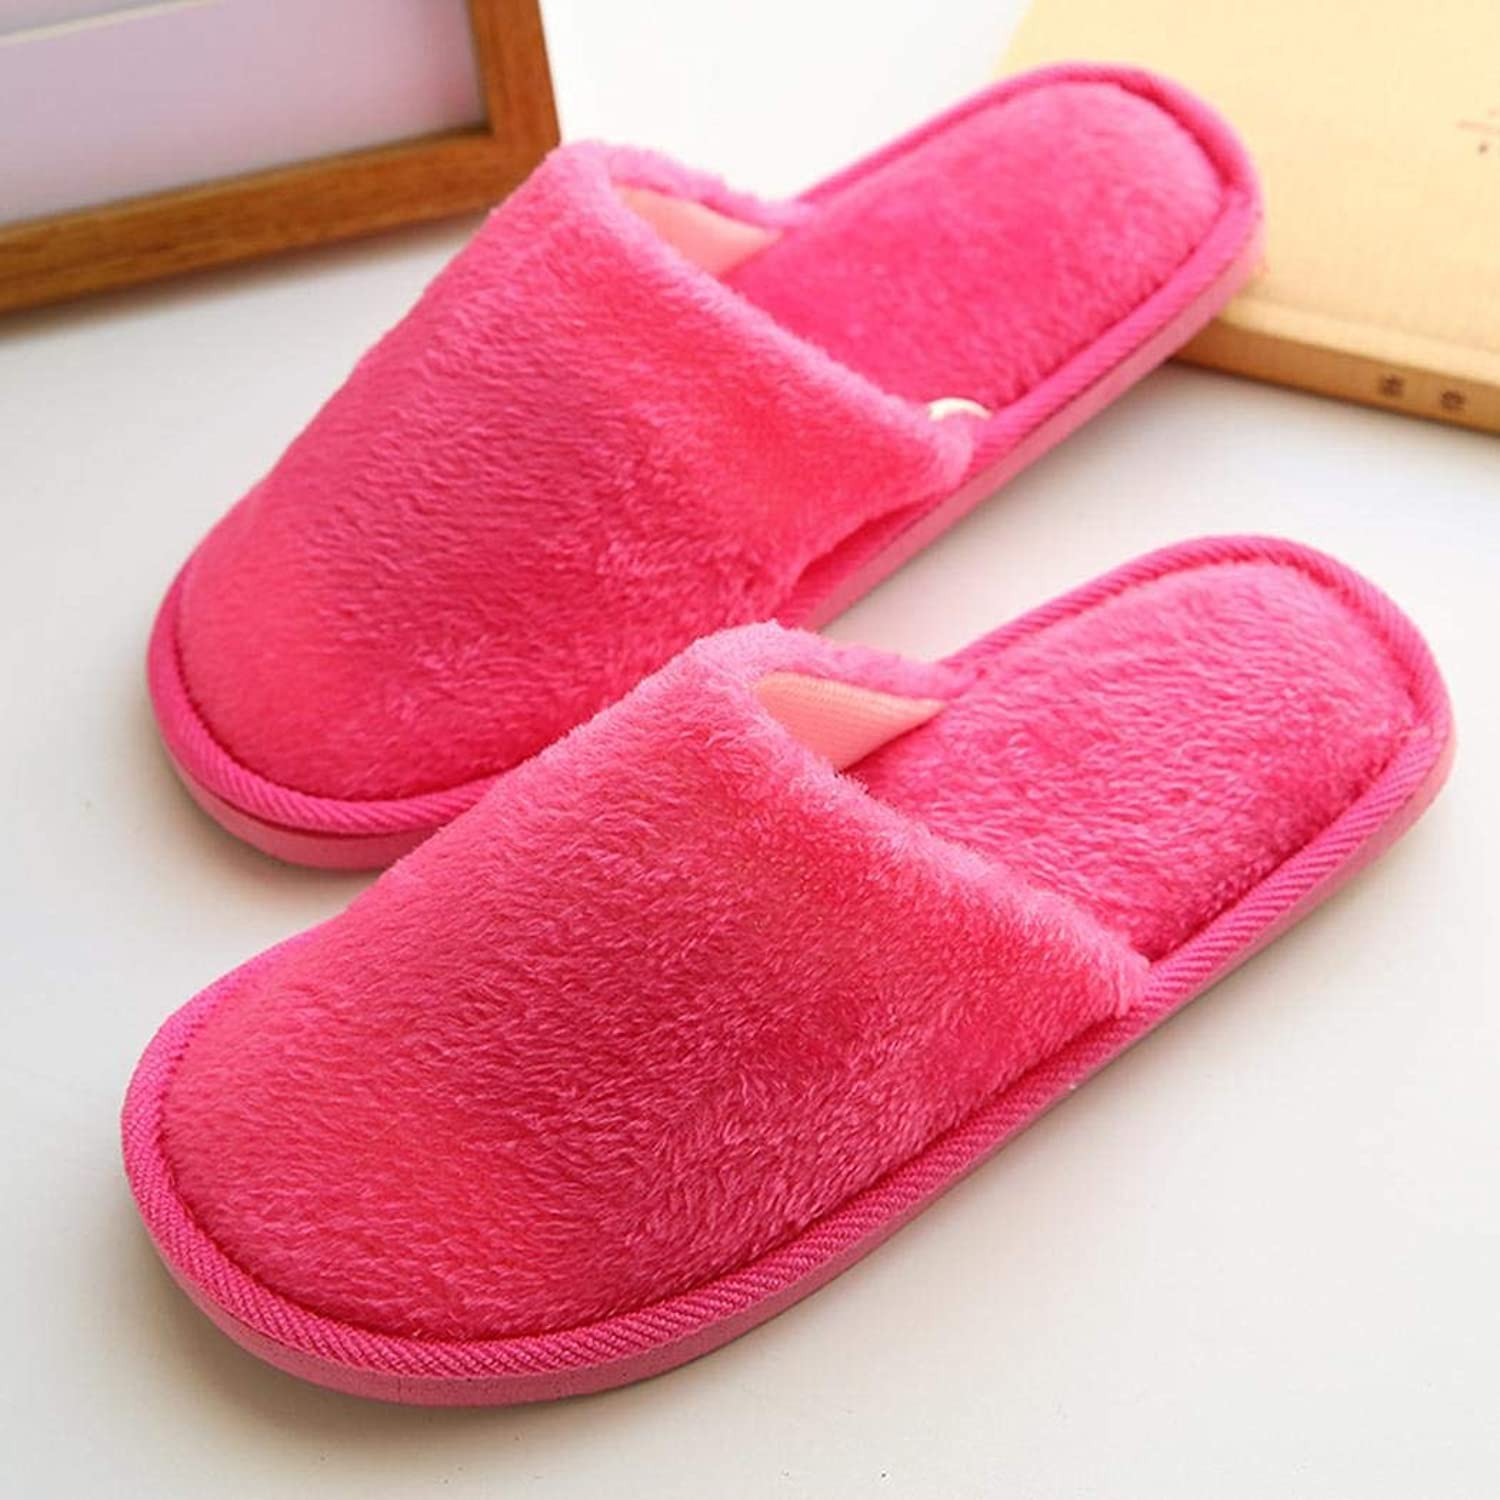 ThinIce Unisex Solid Pattern Thicken Comfortable Warm Slippers Winter shoes Slippers